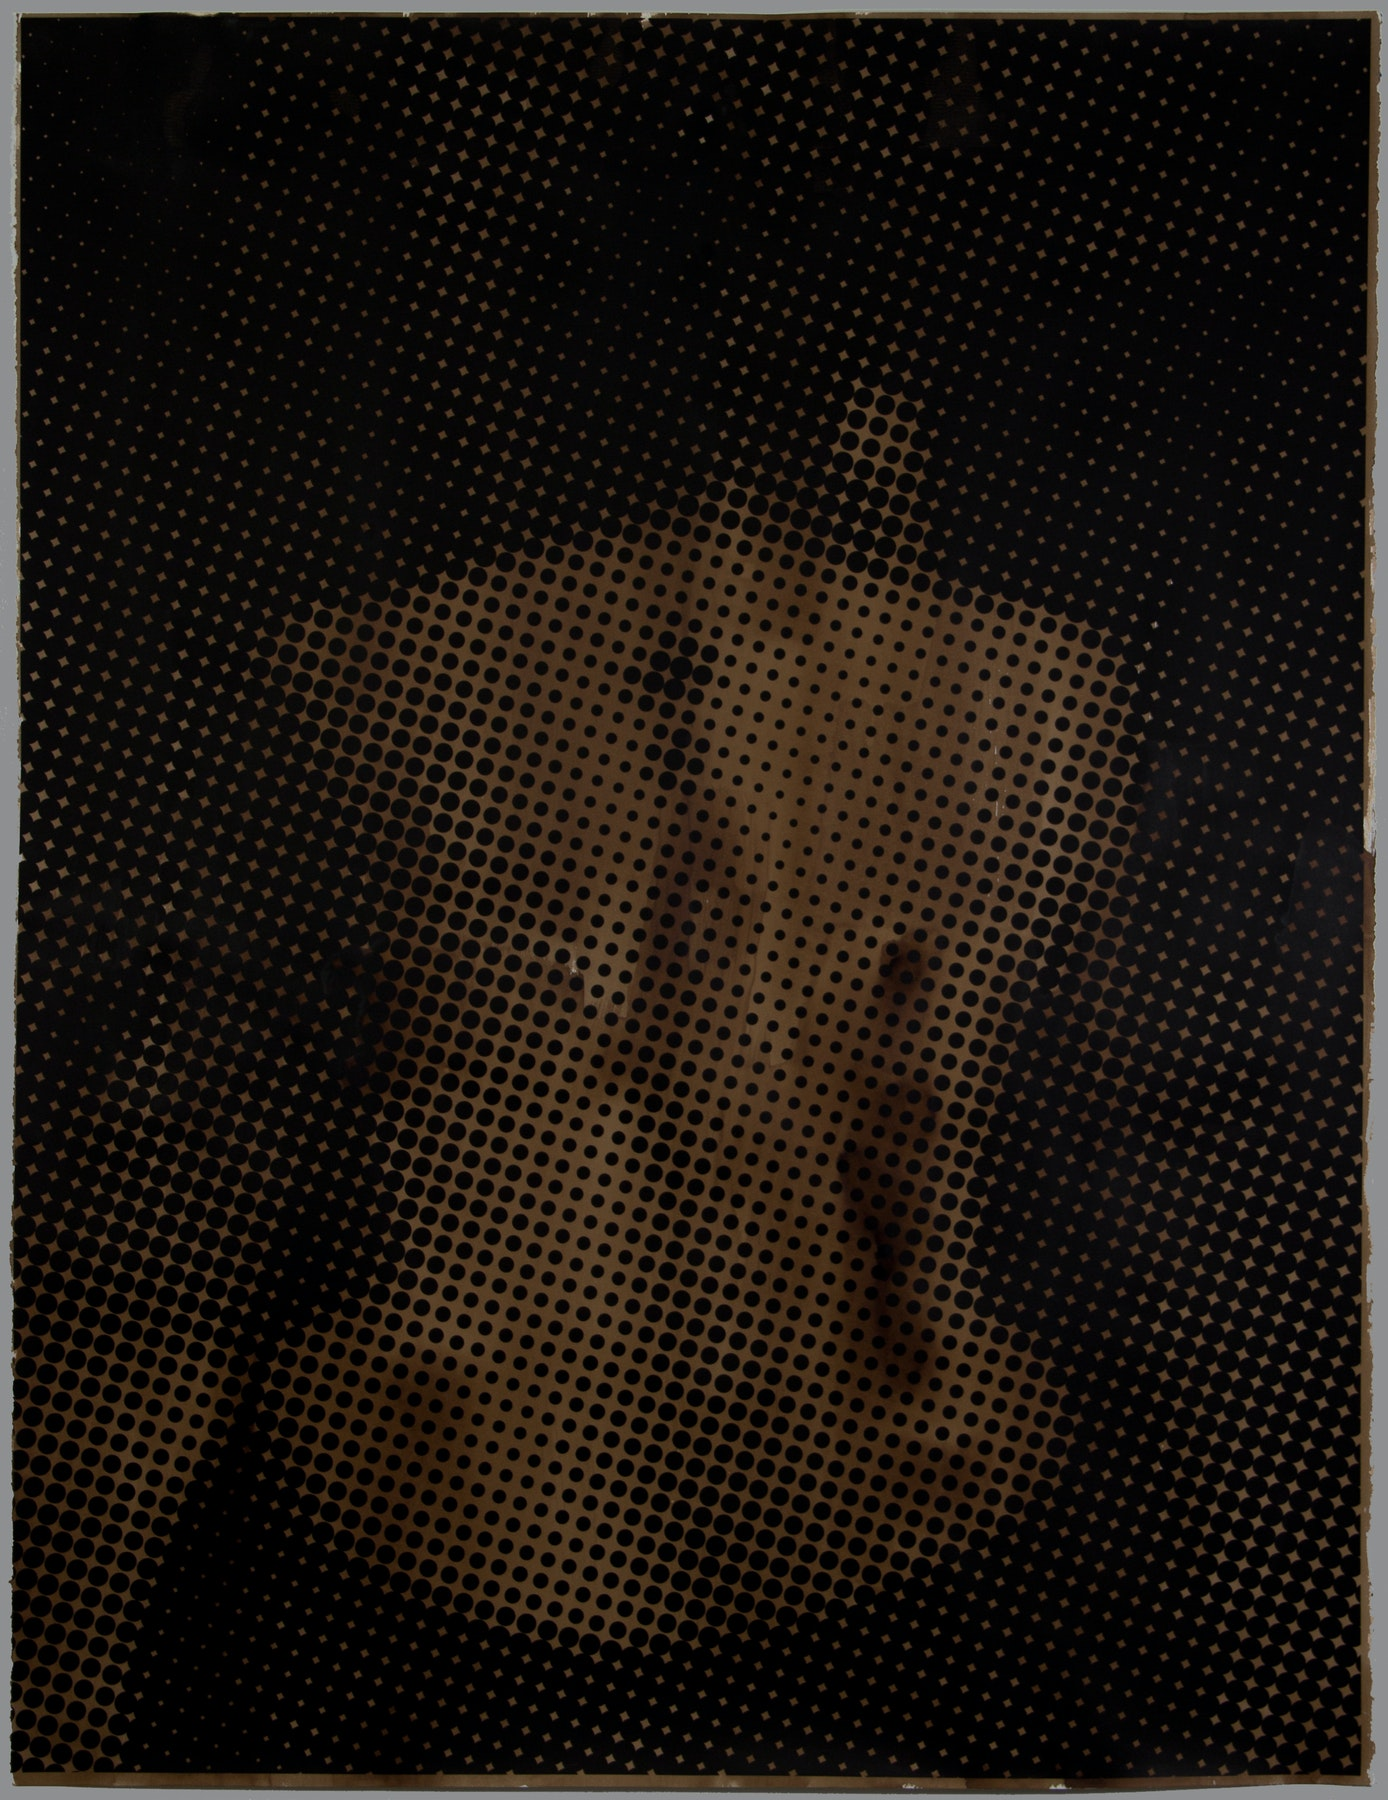 Absence 1 by Mildred Beltre